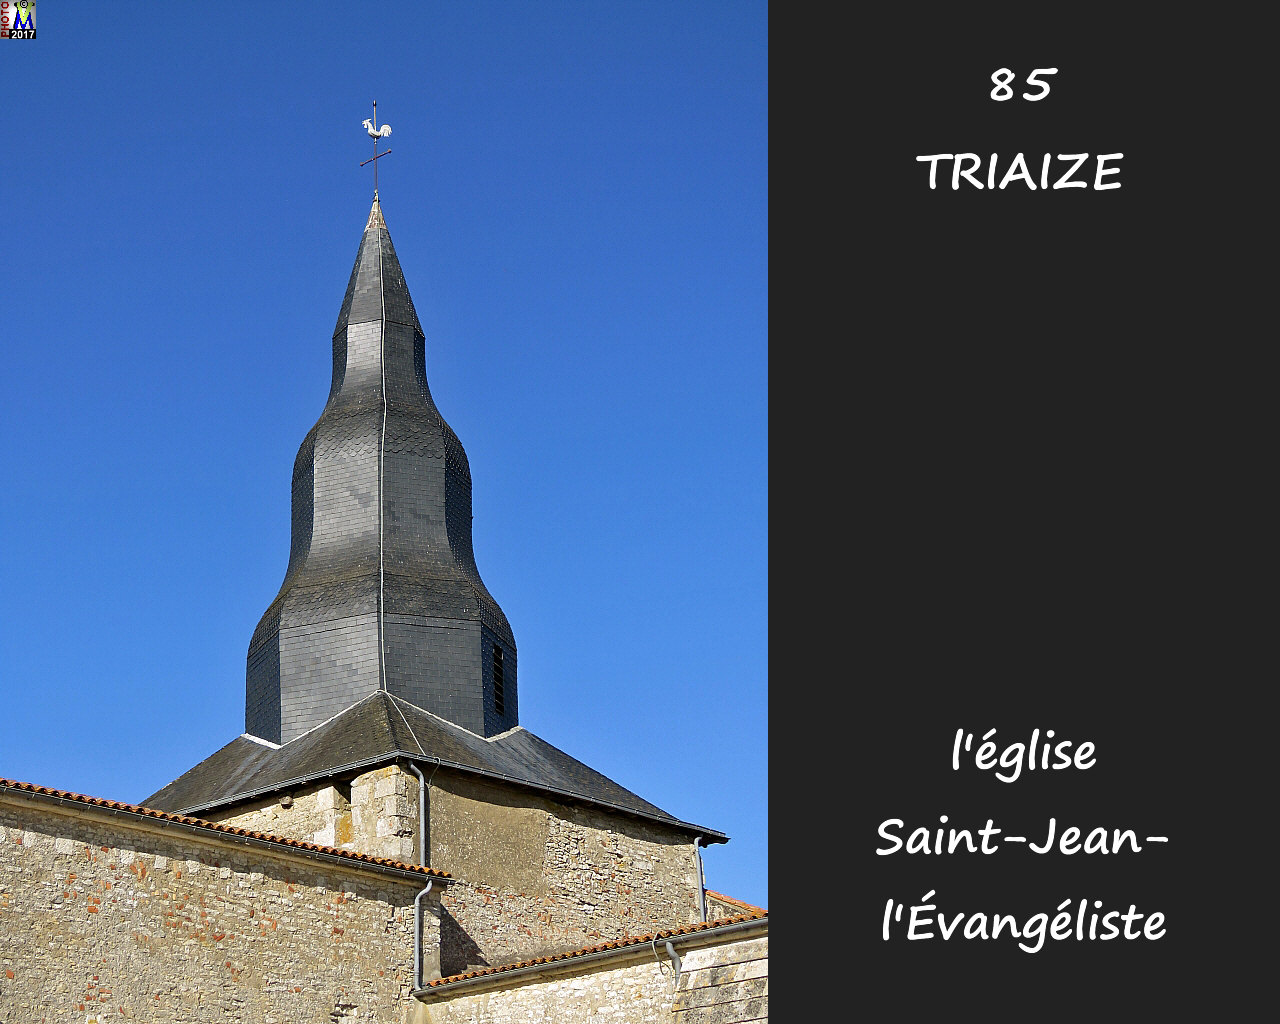 85TRIAIZE_eglise_1010.jpg